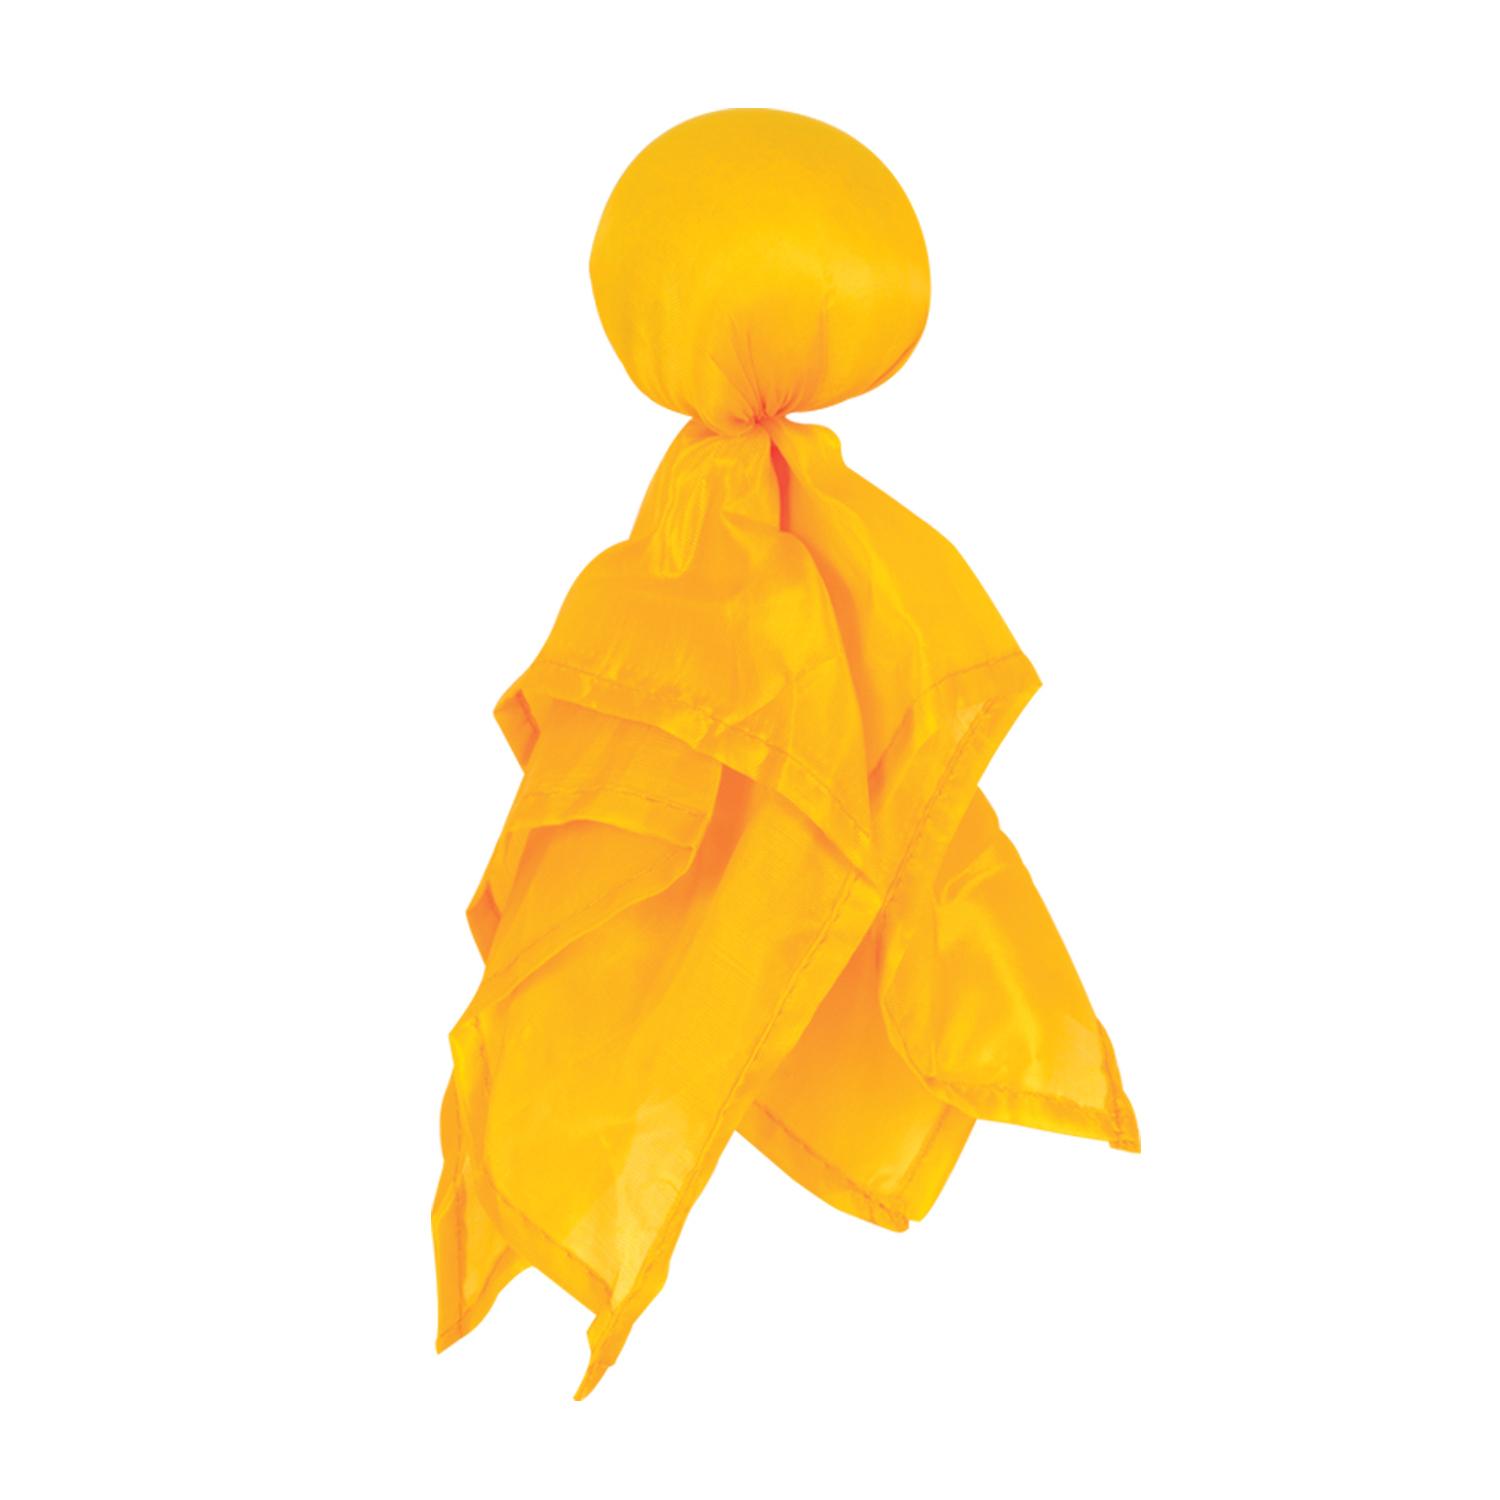 Penalty Flag (Pack of 12) Penalty Flag, yellow, football, games, wholesale, inexpensive, bulk